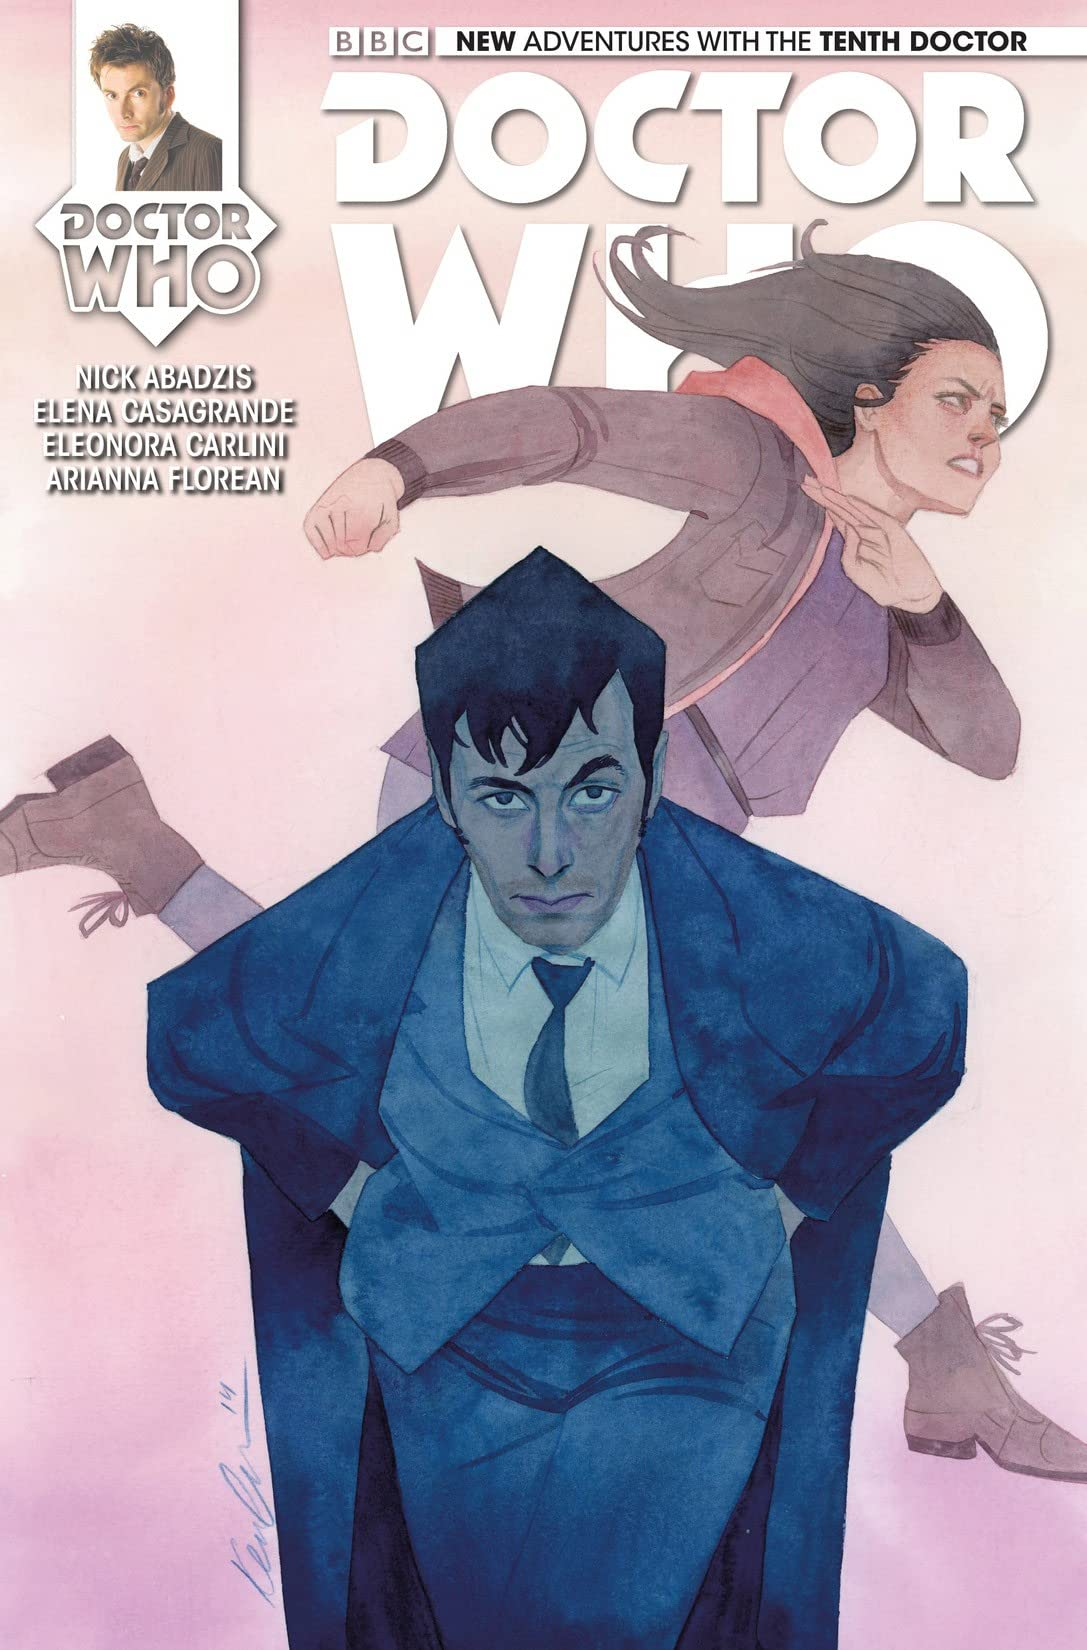 Doctor Who: The Tenth Doctor #12